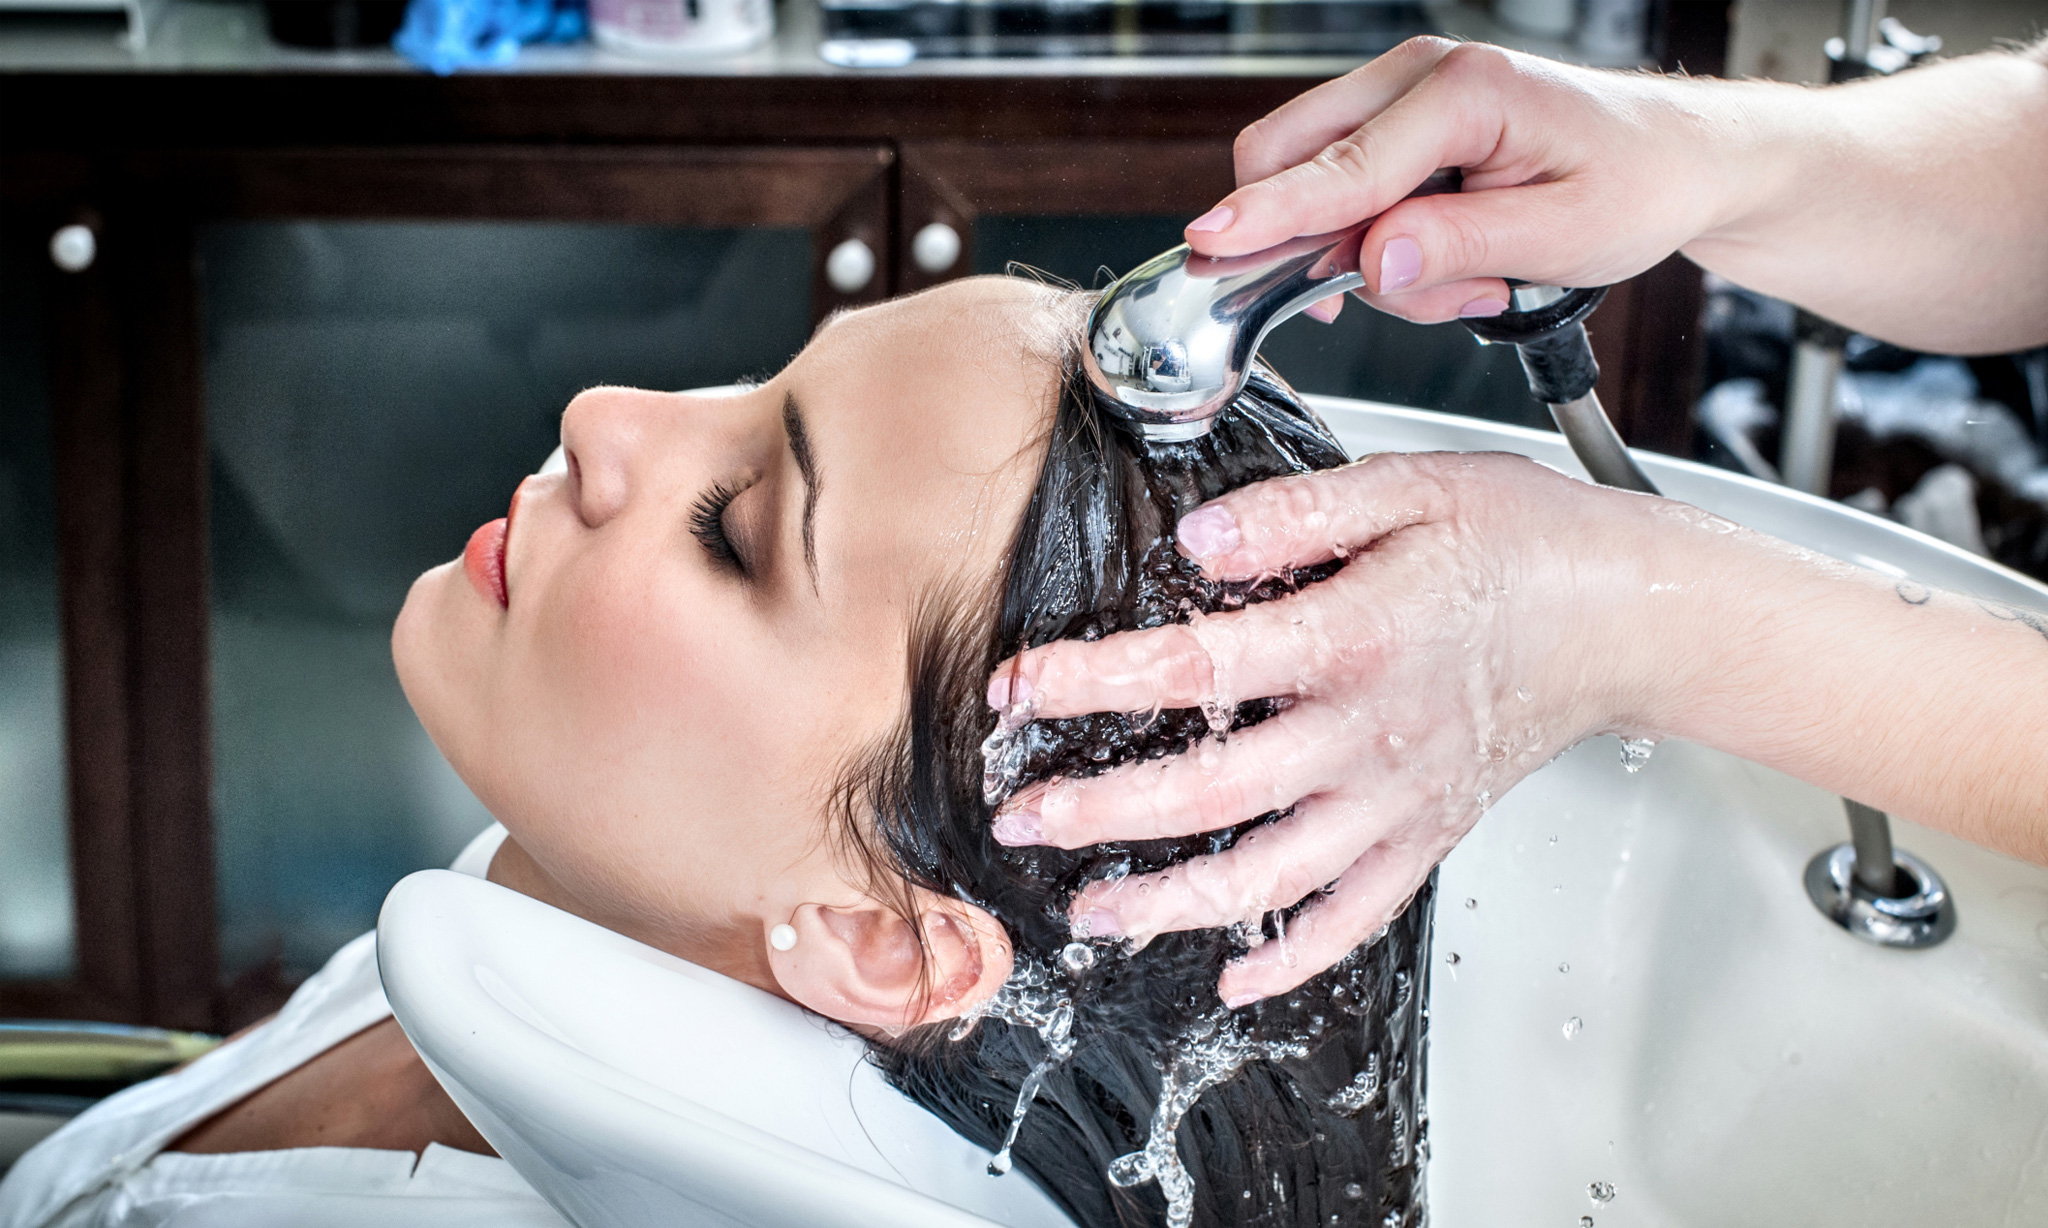 Beauty of a Person with Hair Salon Services